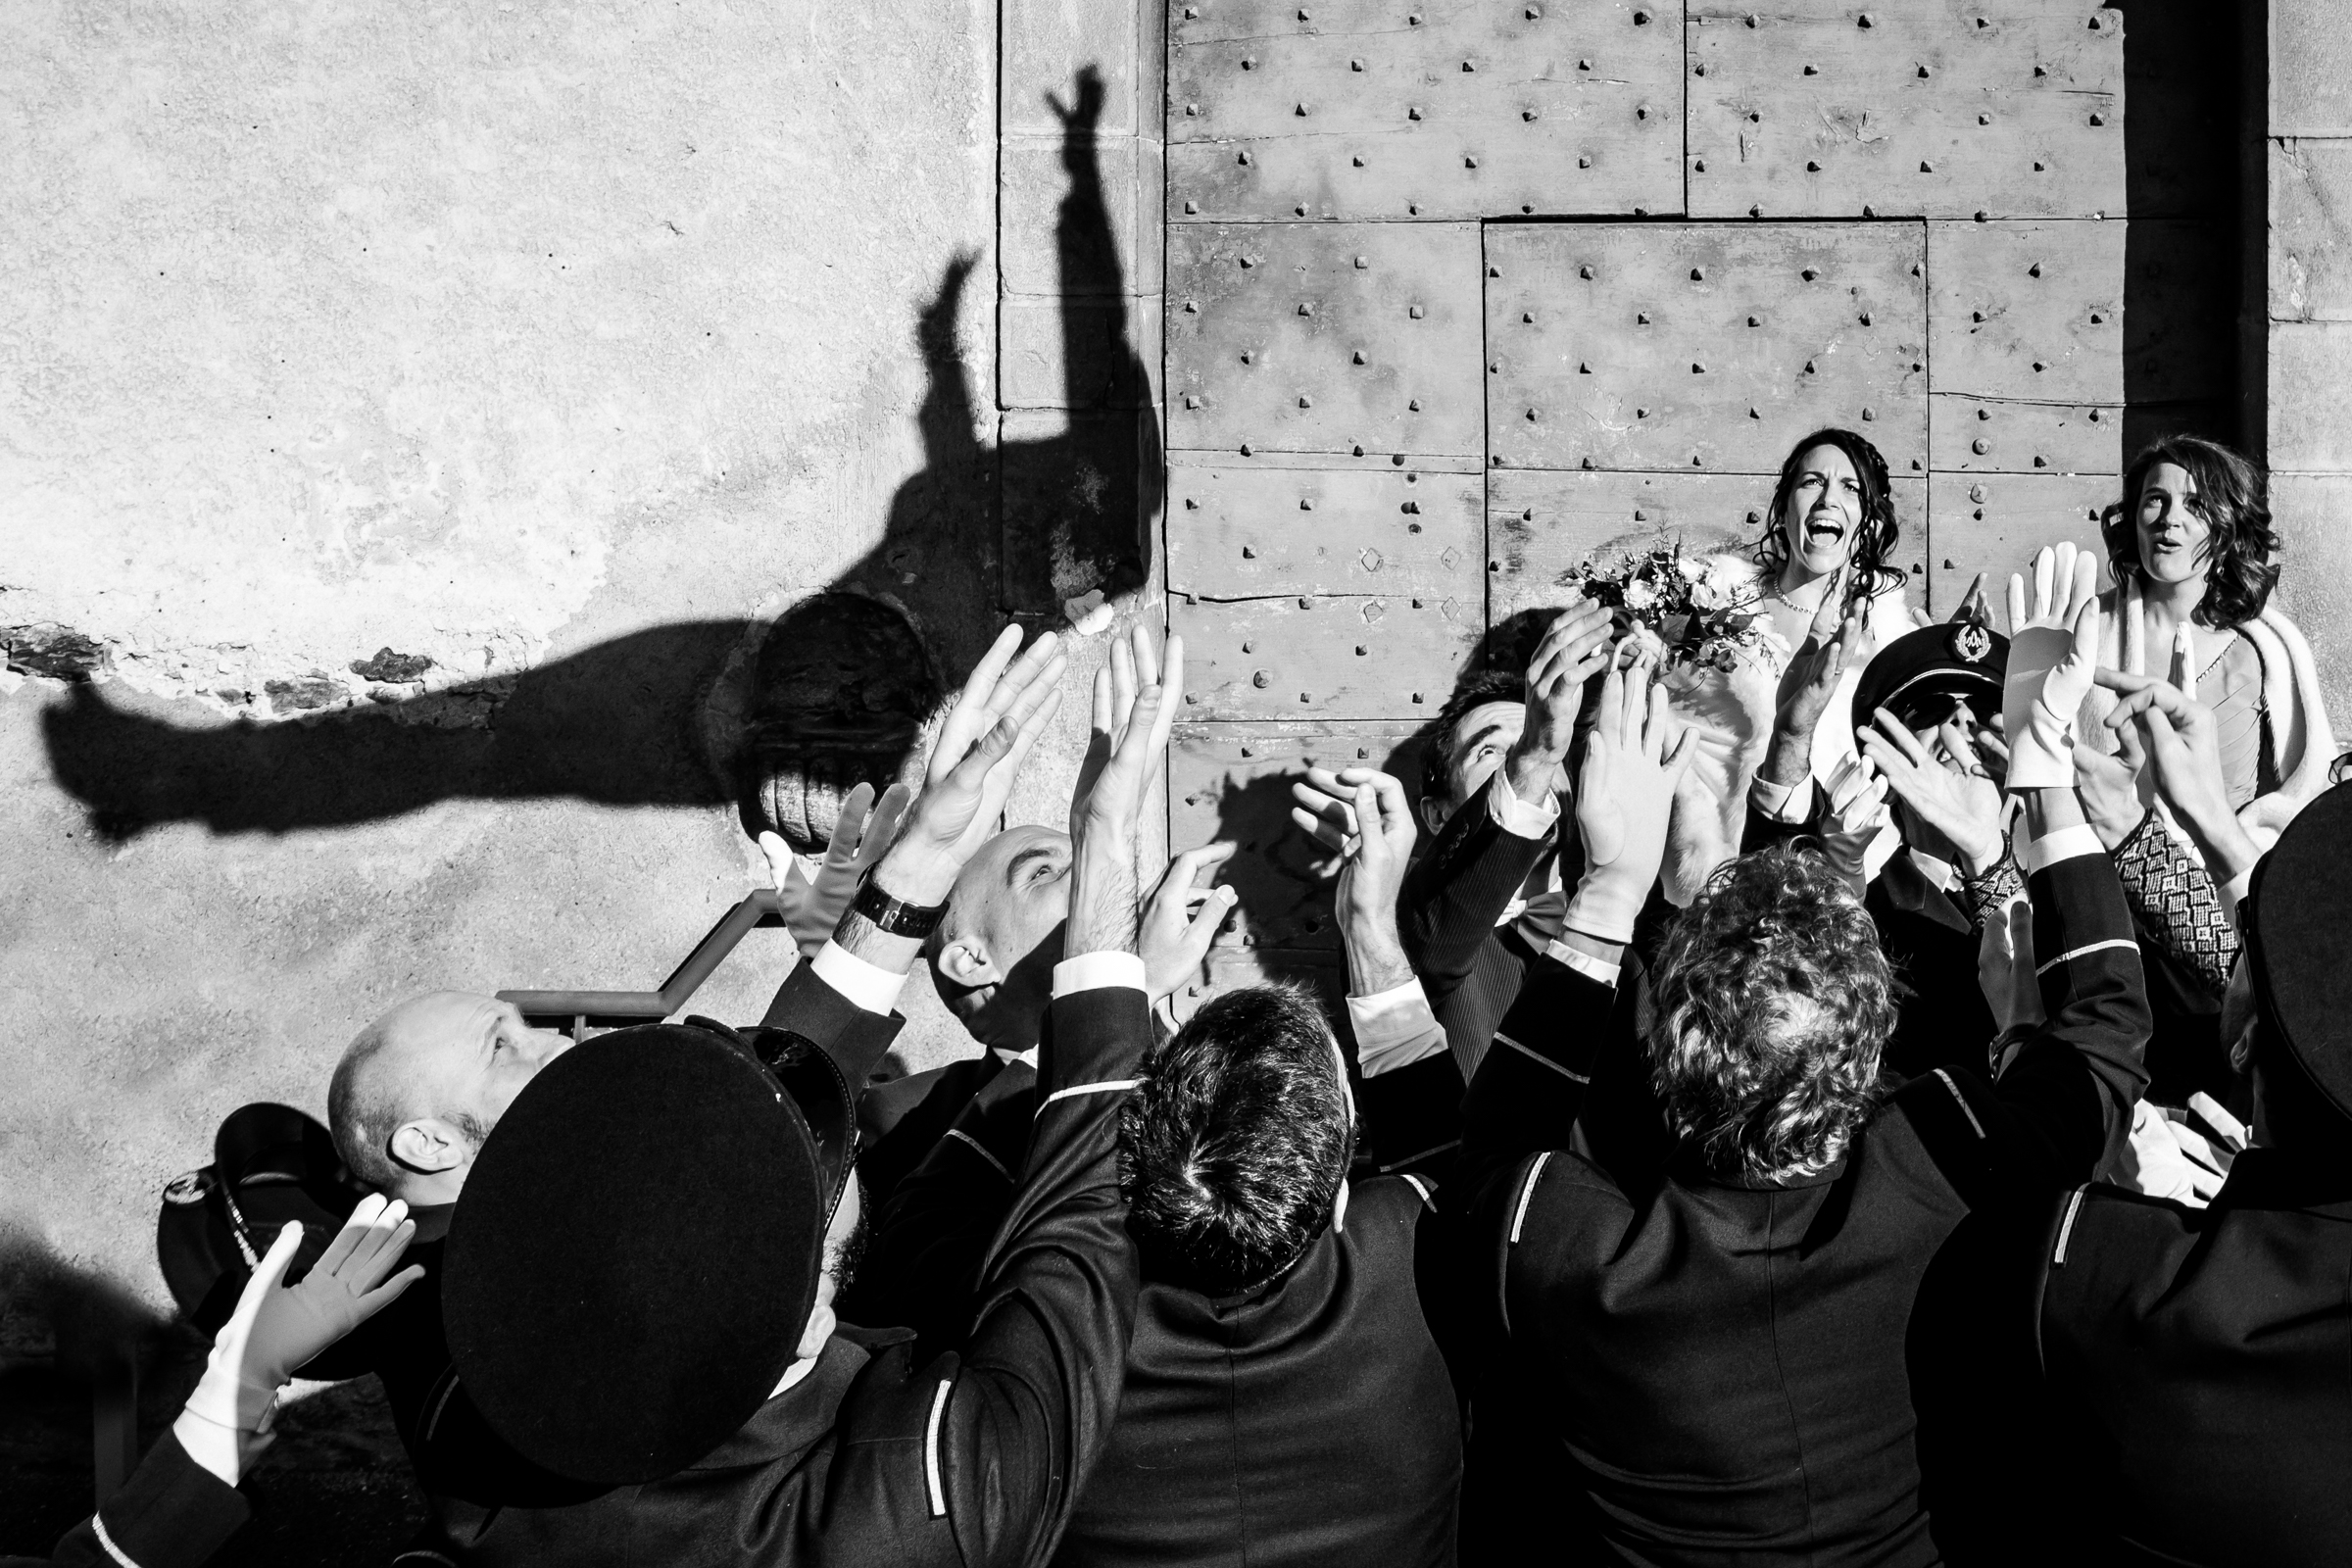 shadow-of-groom-being-thrown-in-the-air-william-lambelet-photography